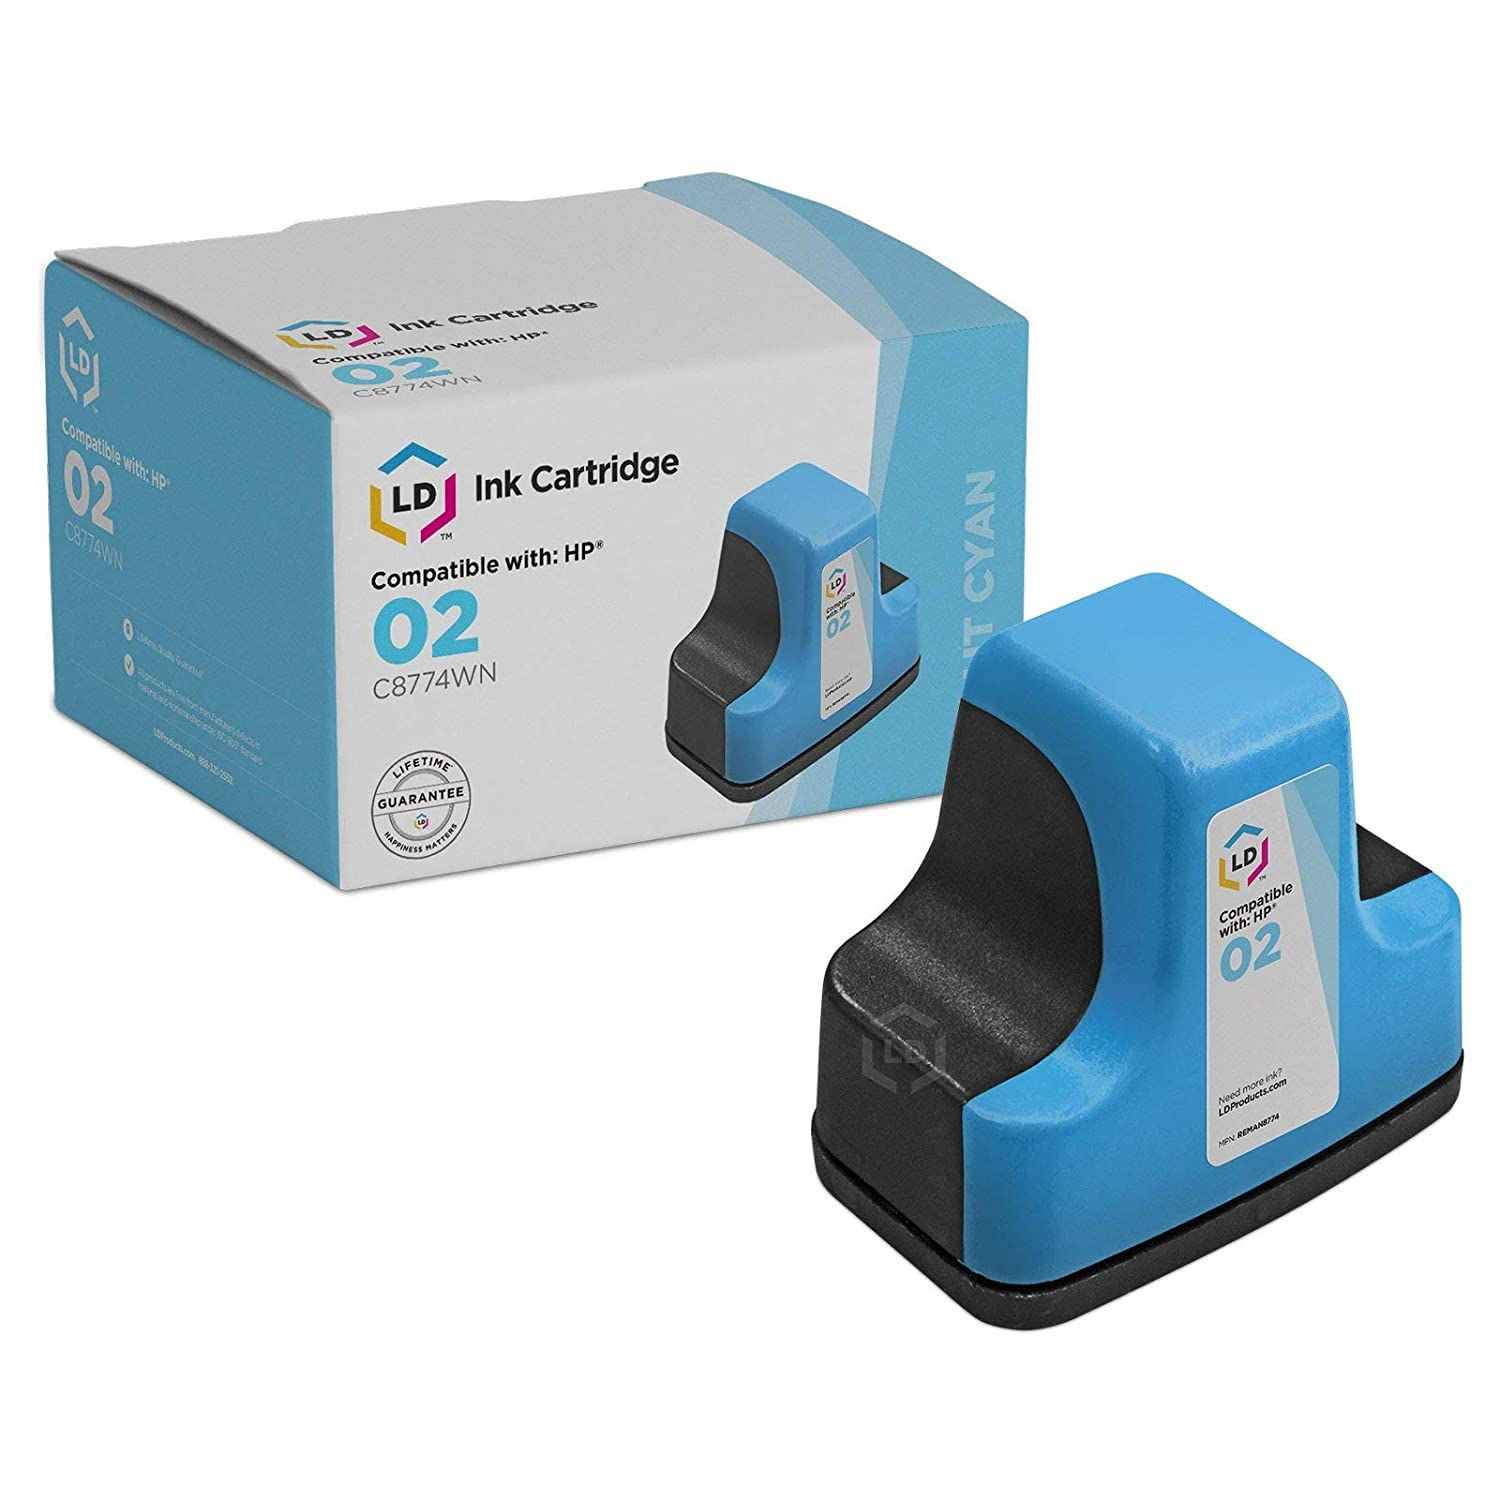 Amazon.com: LD © Remanufactured Replacement Ink Cartridge for Hewlett  Packard C8774WN (HP 02) Light Cyan: Office Products